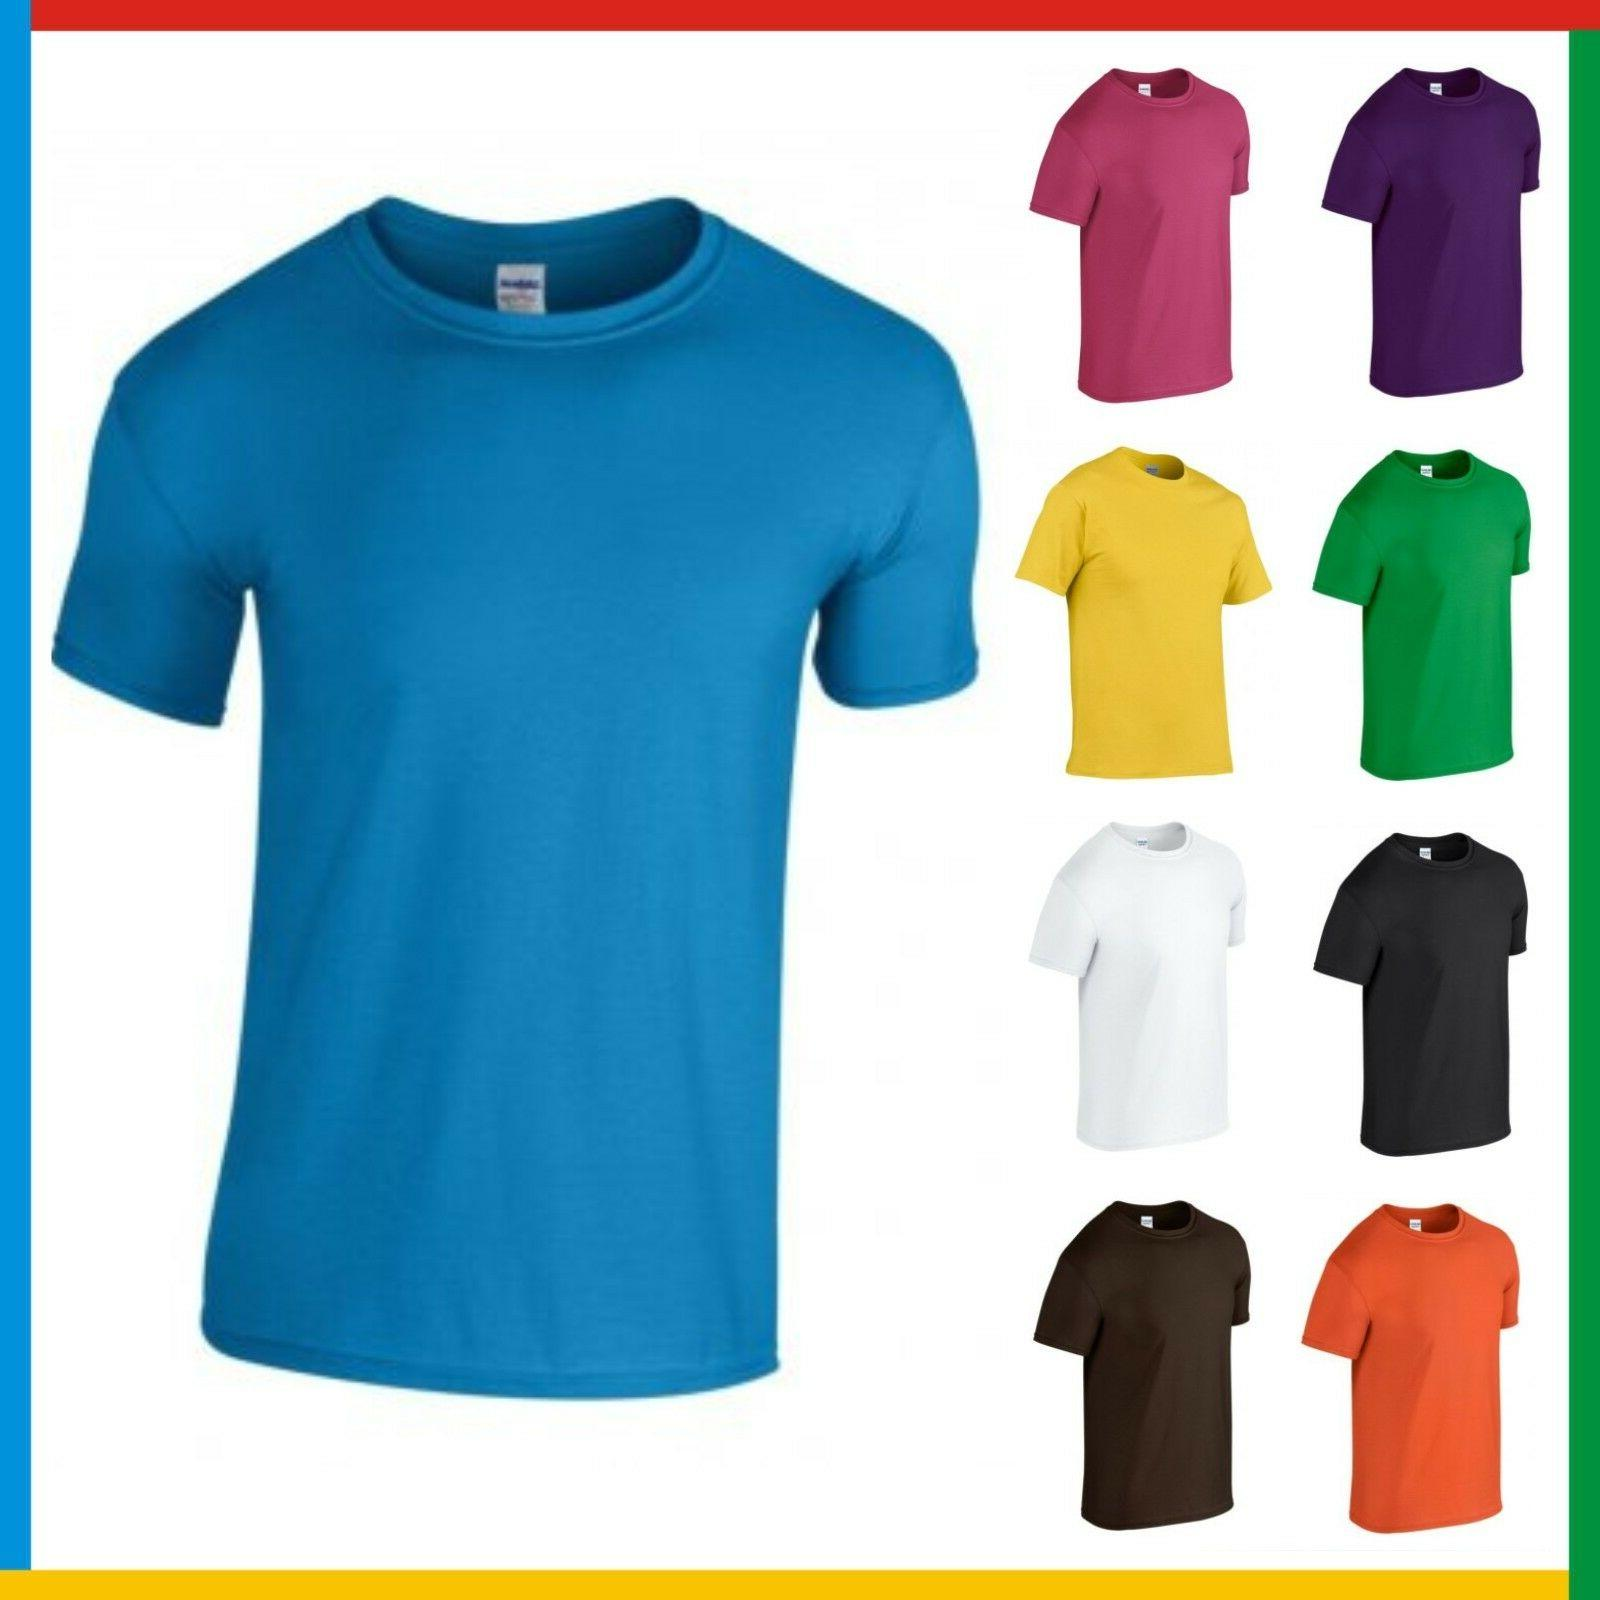 CHILDRENS 100% COTTON T-SHIRT GILDAN Soft Feel Tee Ringspun